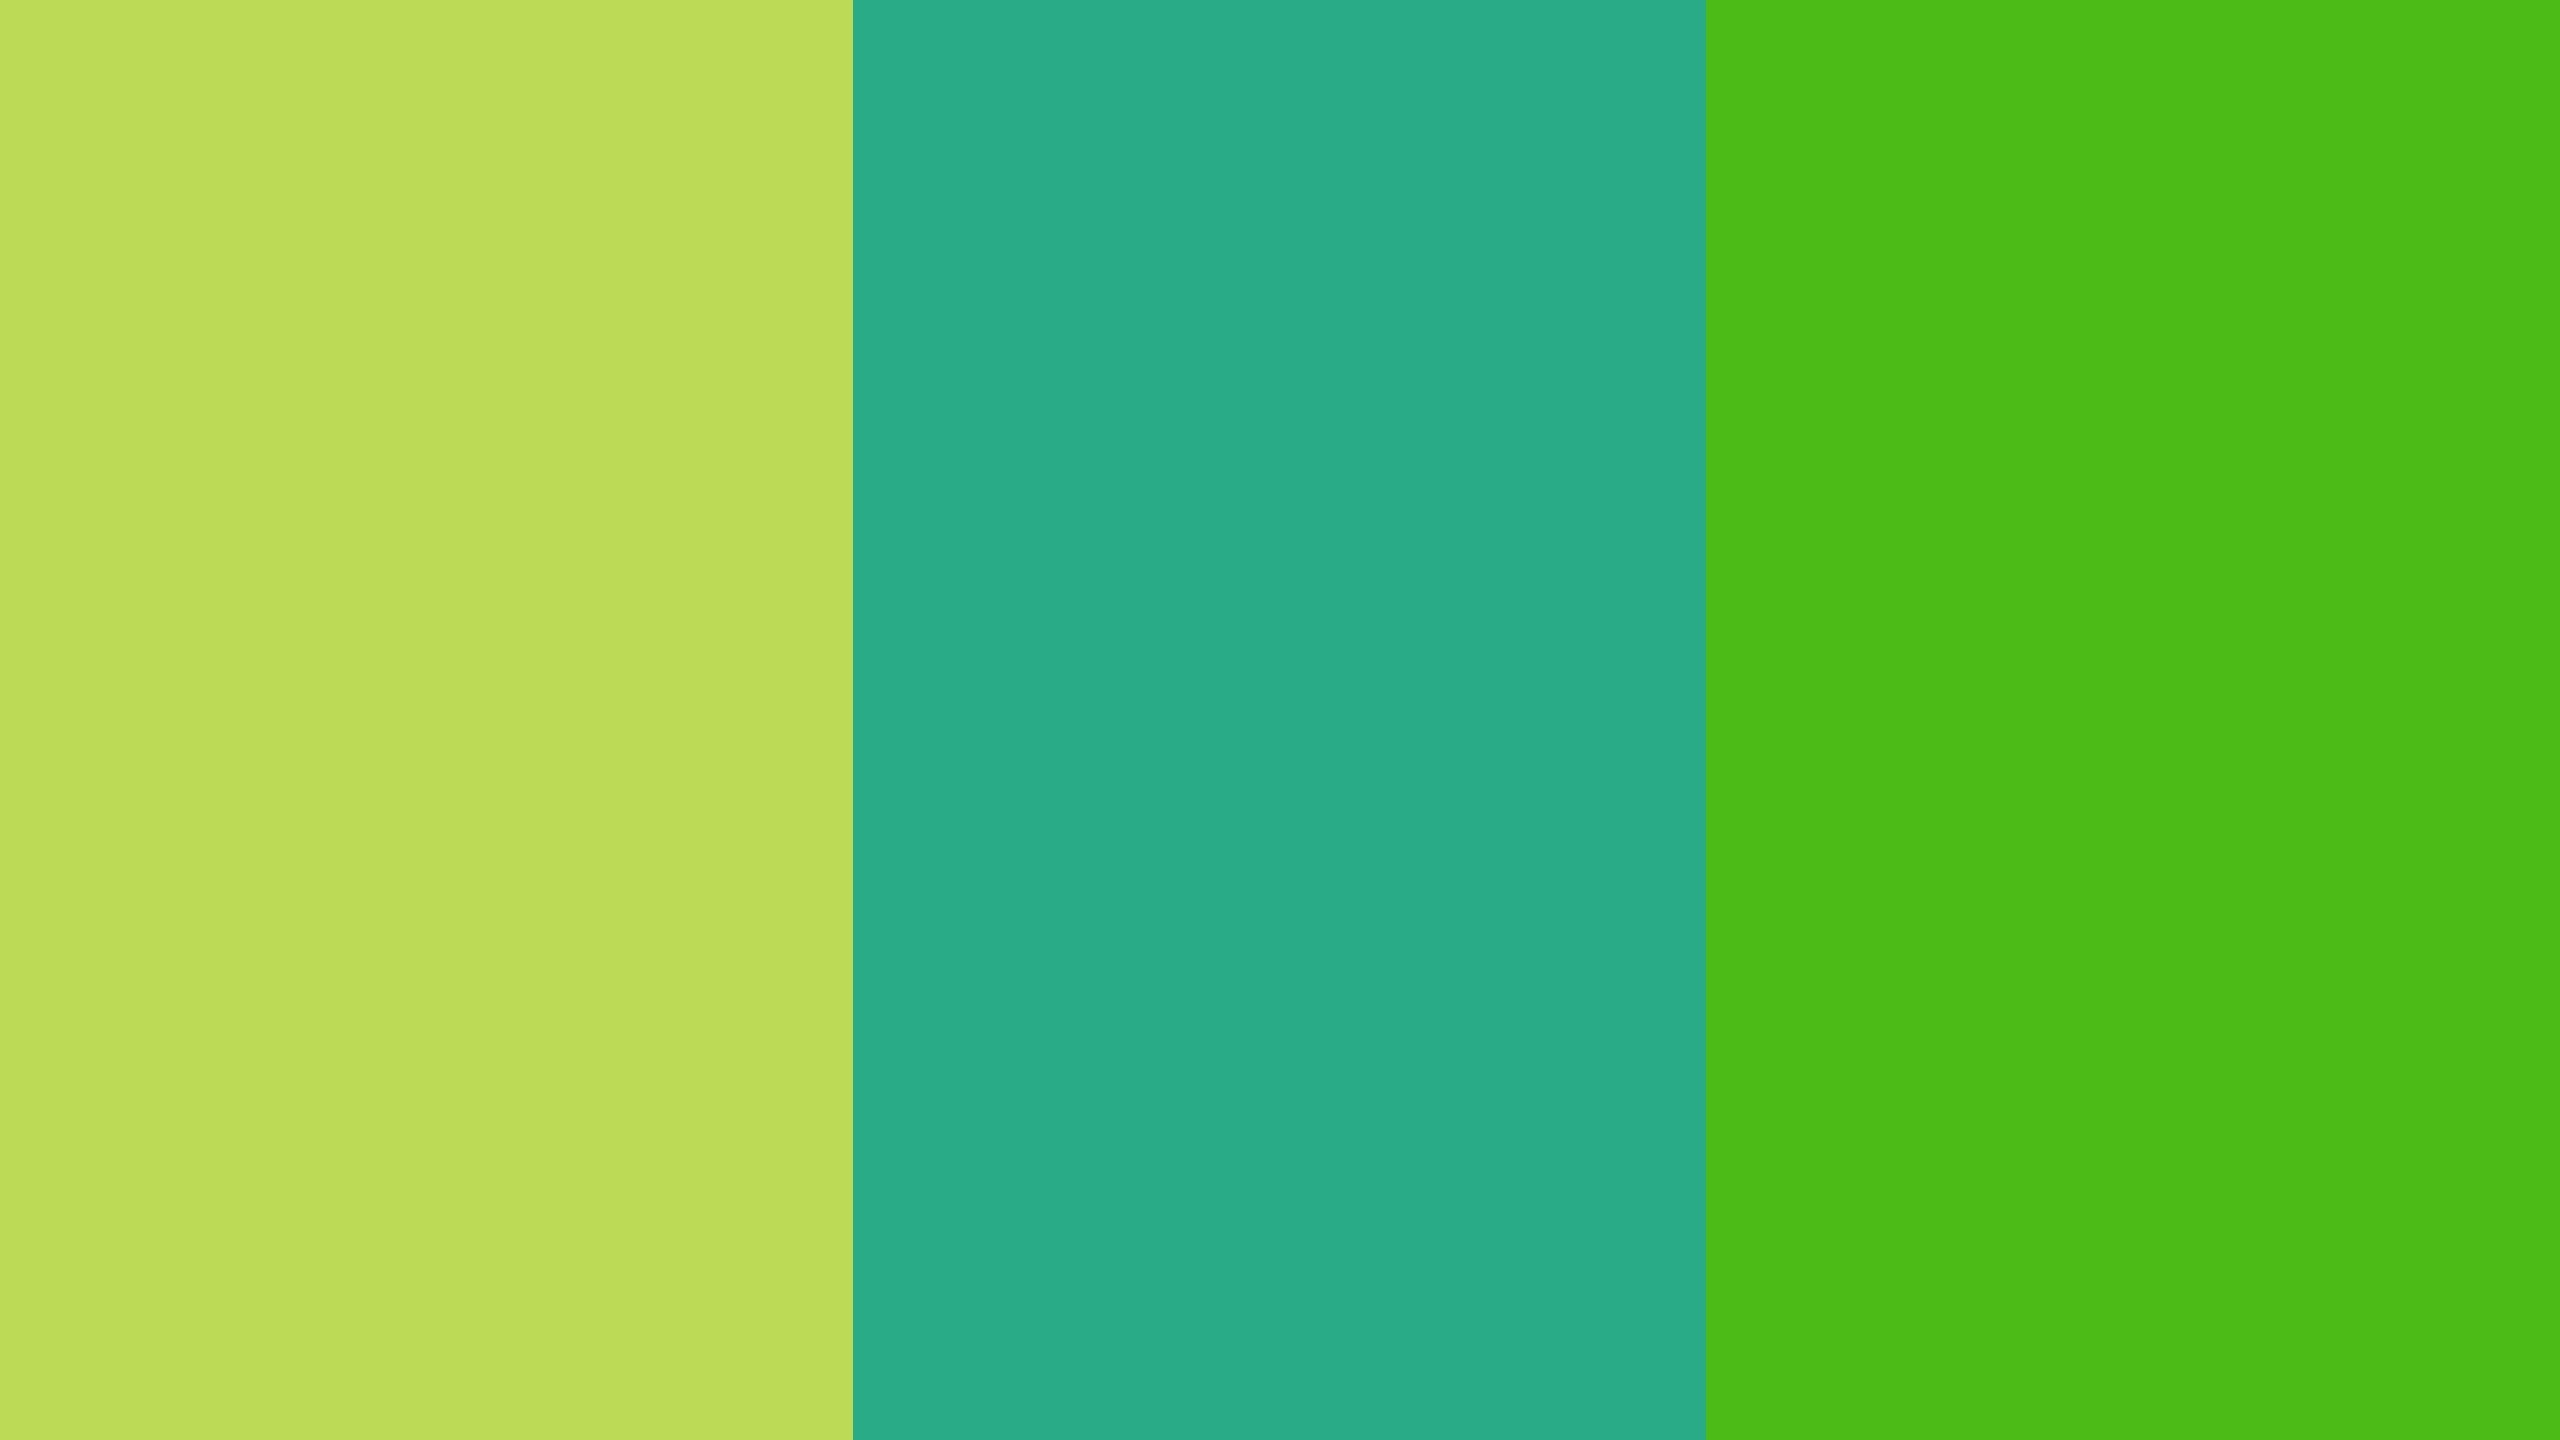 Res: 2560x1440,  resolution June Bud Jungle Green and Kelly Green solid